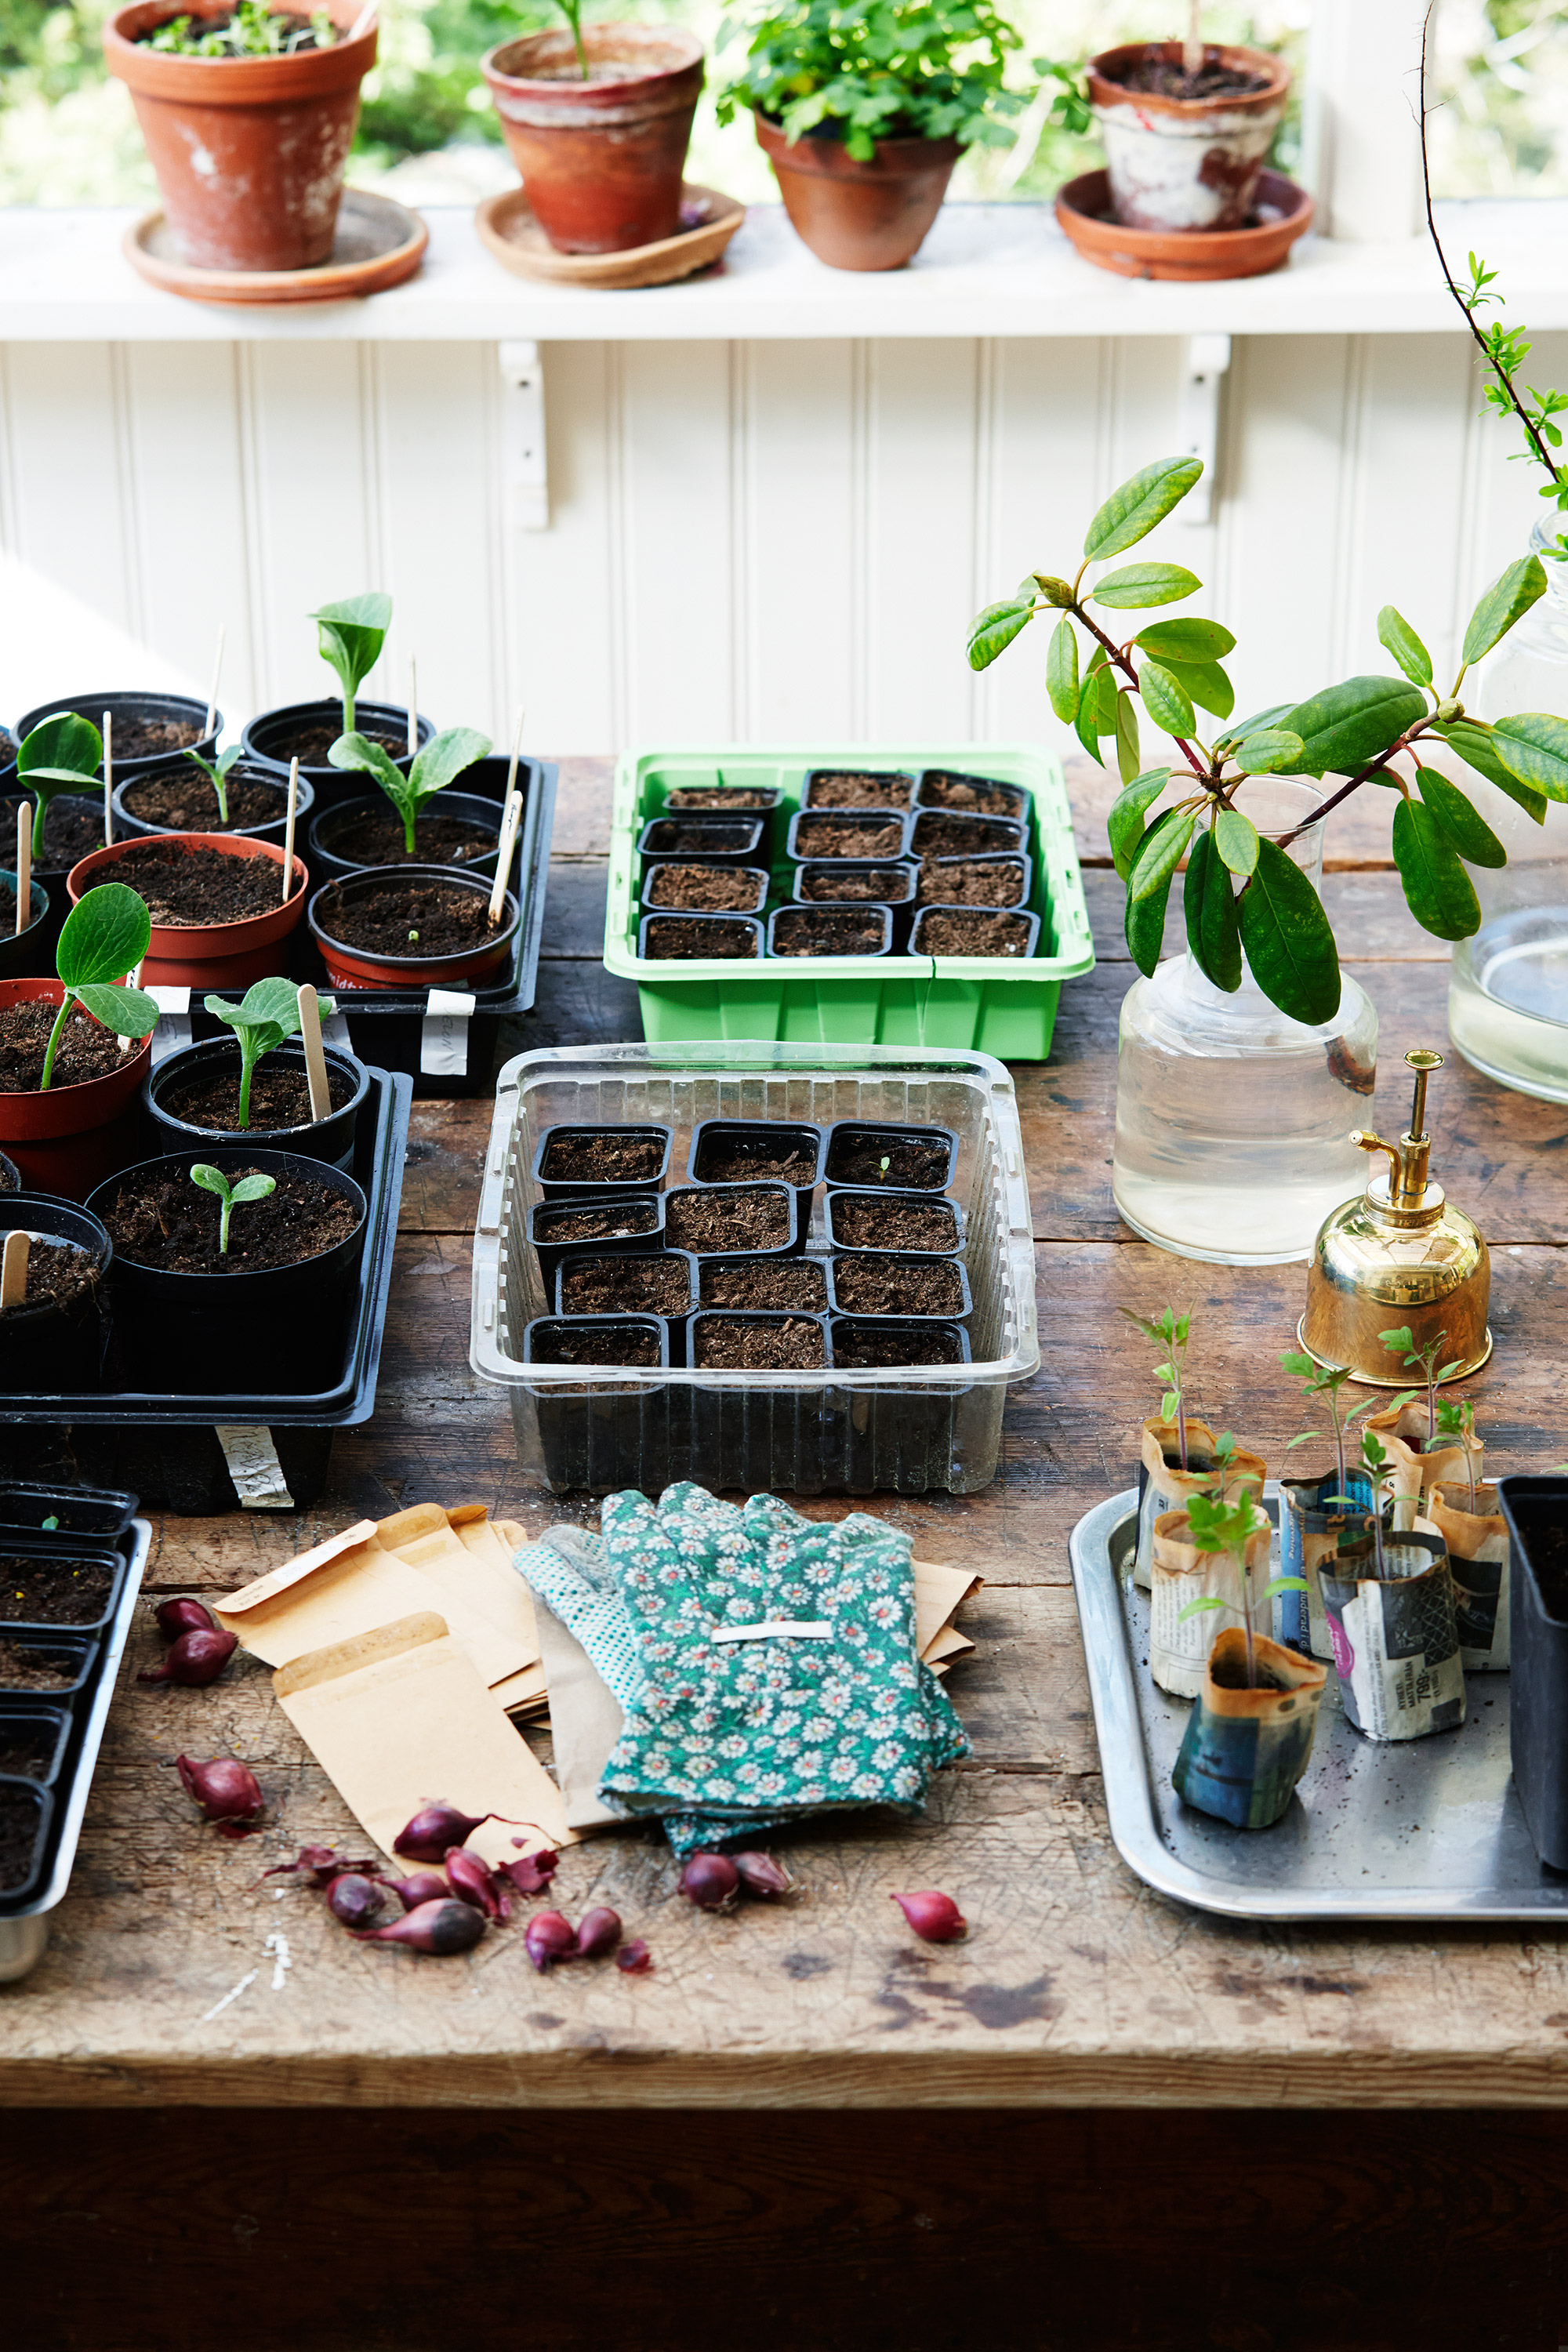 10 Apps Every Gardener Should Have